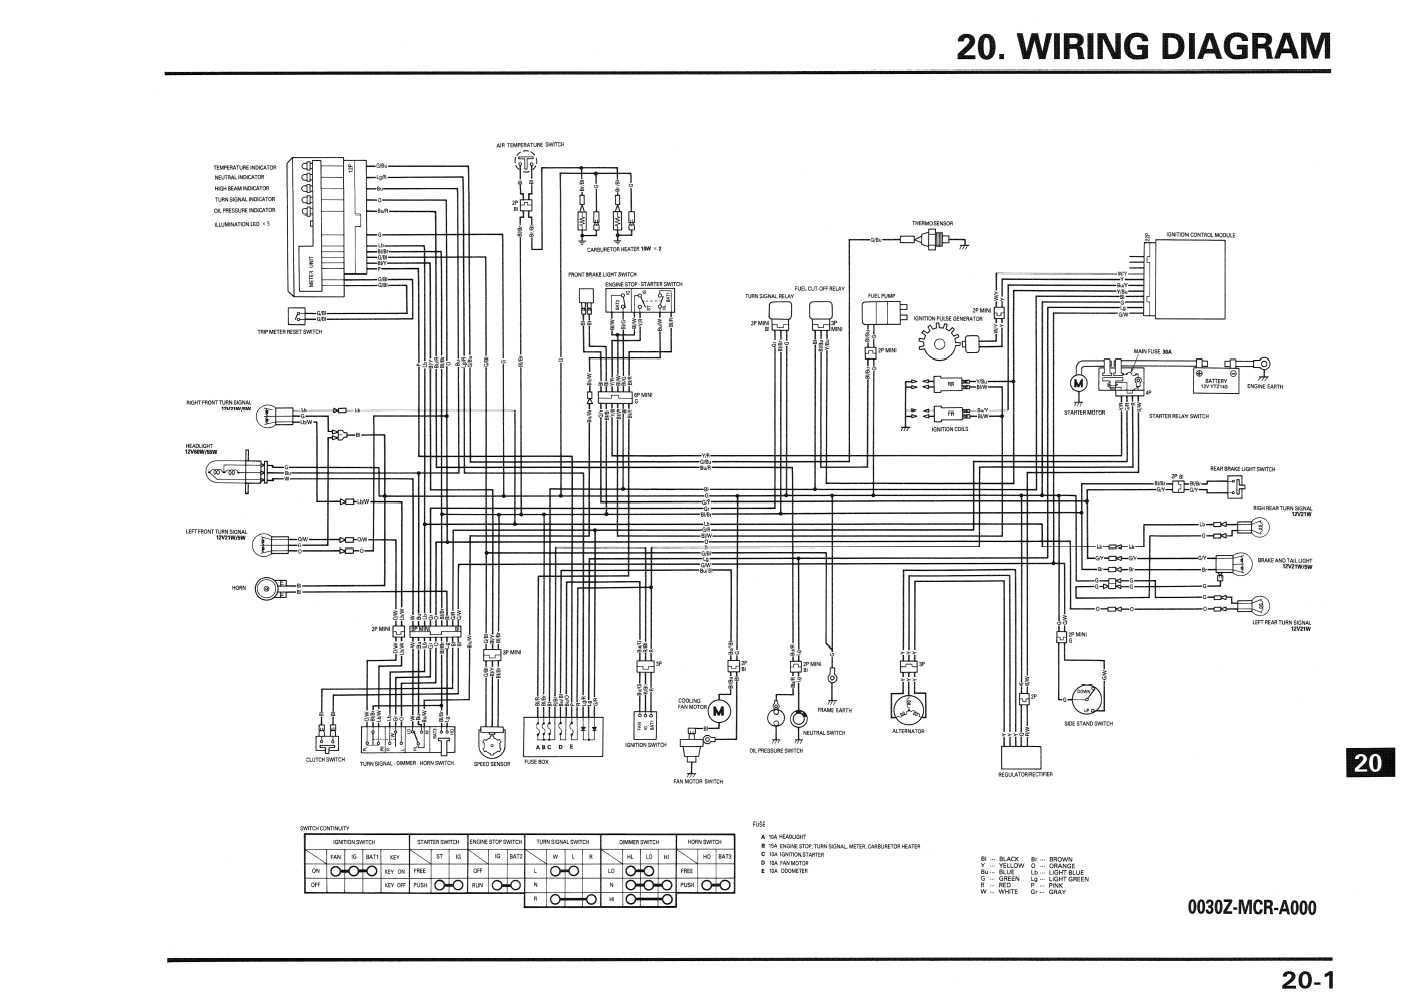 shop wiring diagram - somurich.com shop wiring layout cnc shop wiring diagrams